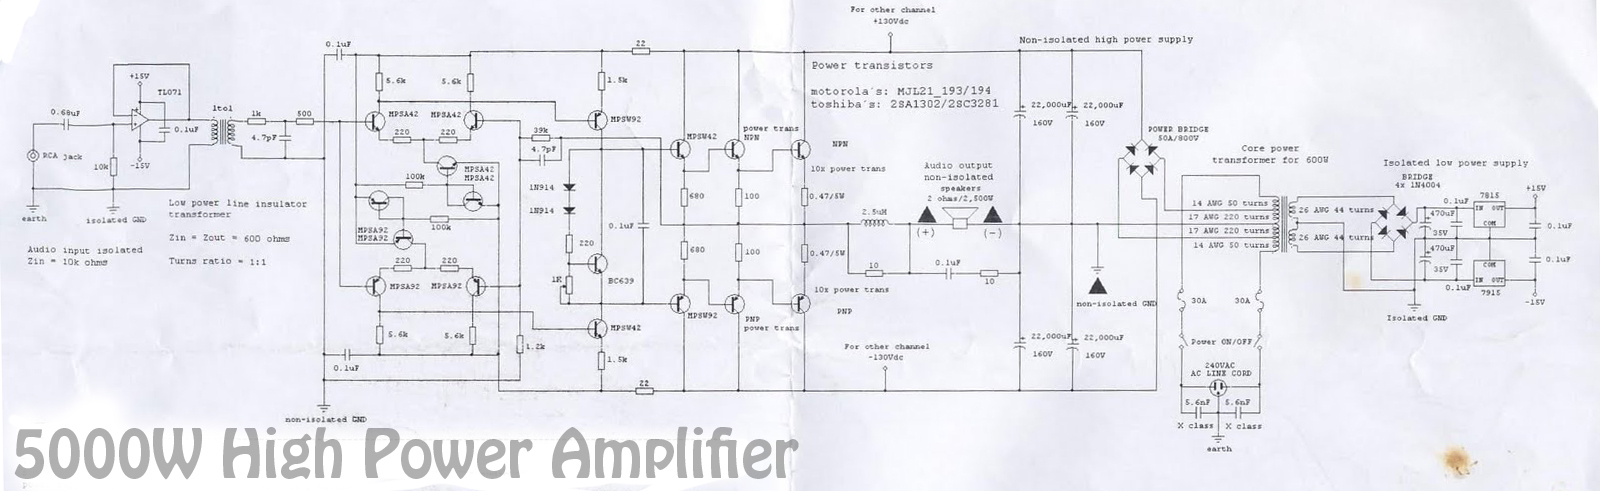 Click To view larger | 5000W High Power Amplifier Audio Circuits